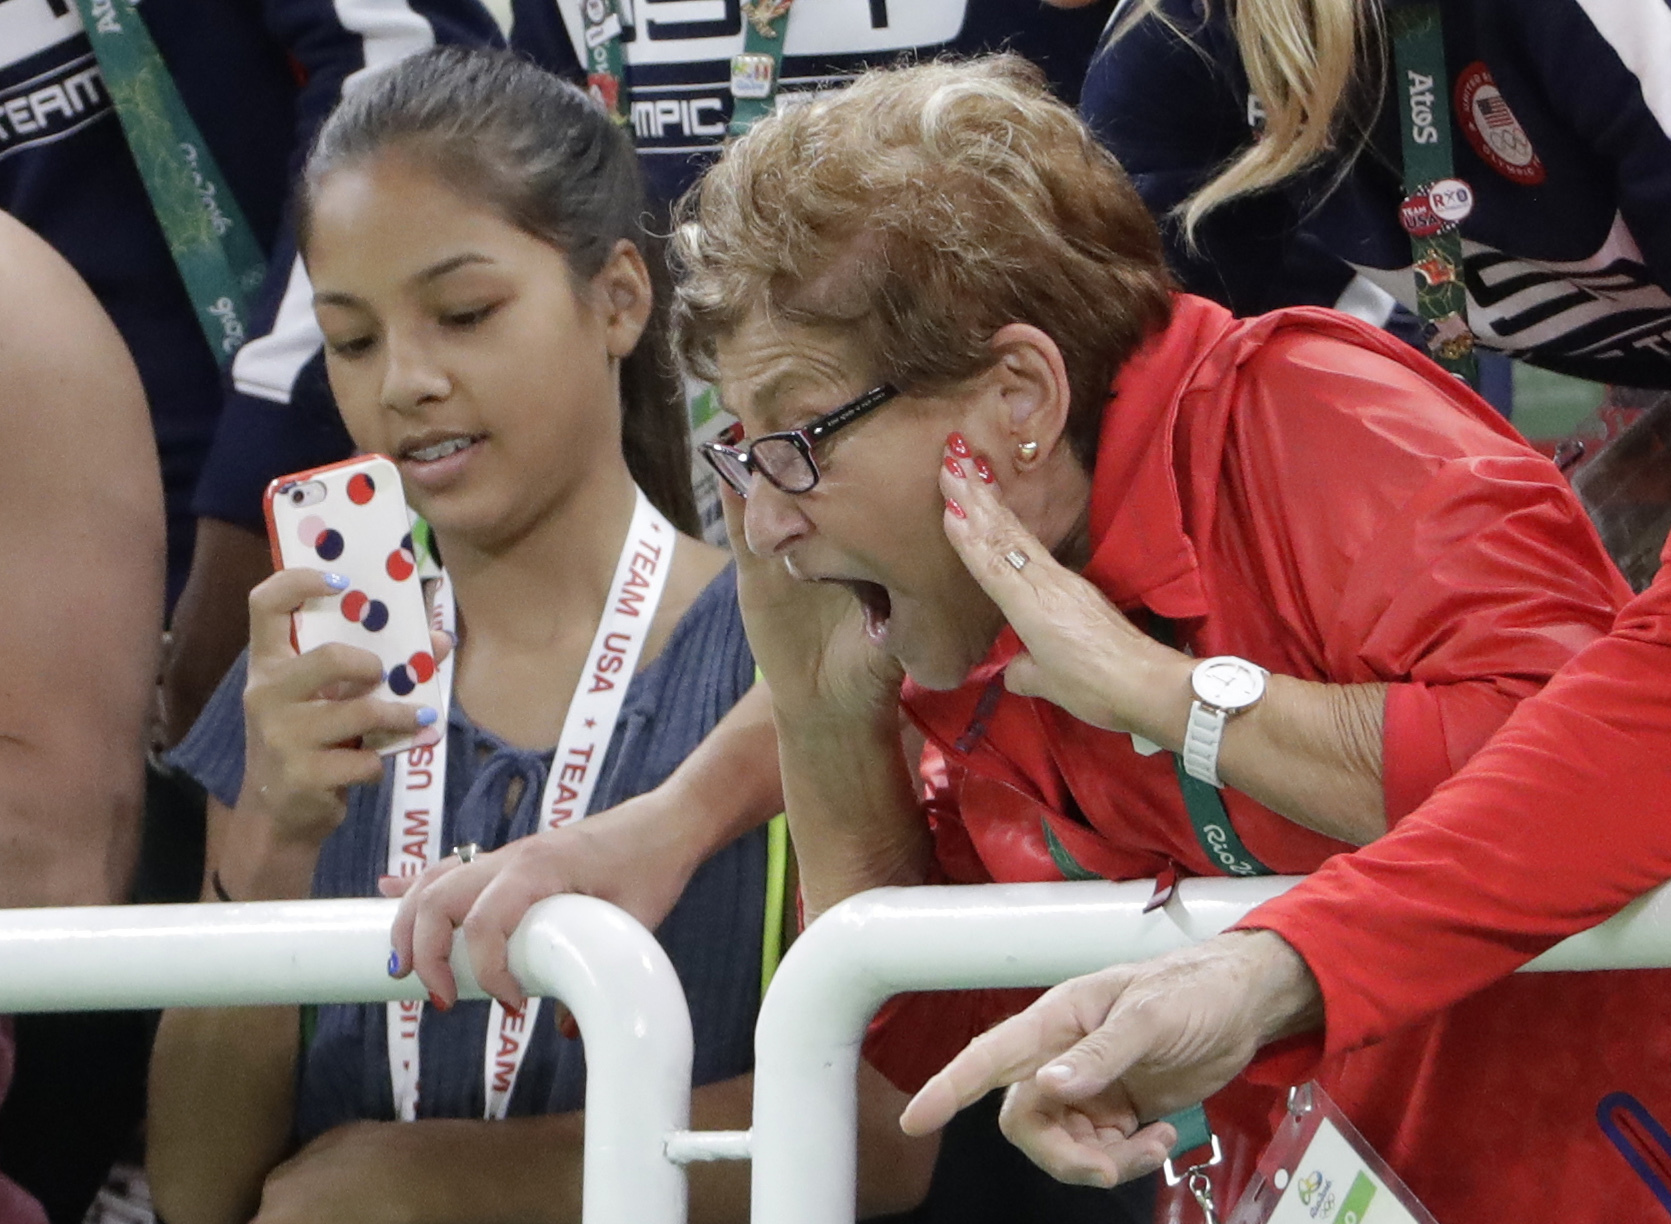 Martha Karolyi, U.S. gymnastics team coordinator, celebrates from the stands after U.S. gymnasts Simone Biles and Aly Raisman won gold and silver respectively during the artistic gymnastics women's individual all-around final at the 2016 Summer Olympics i